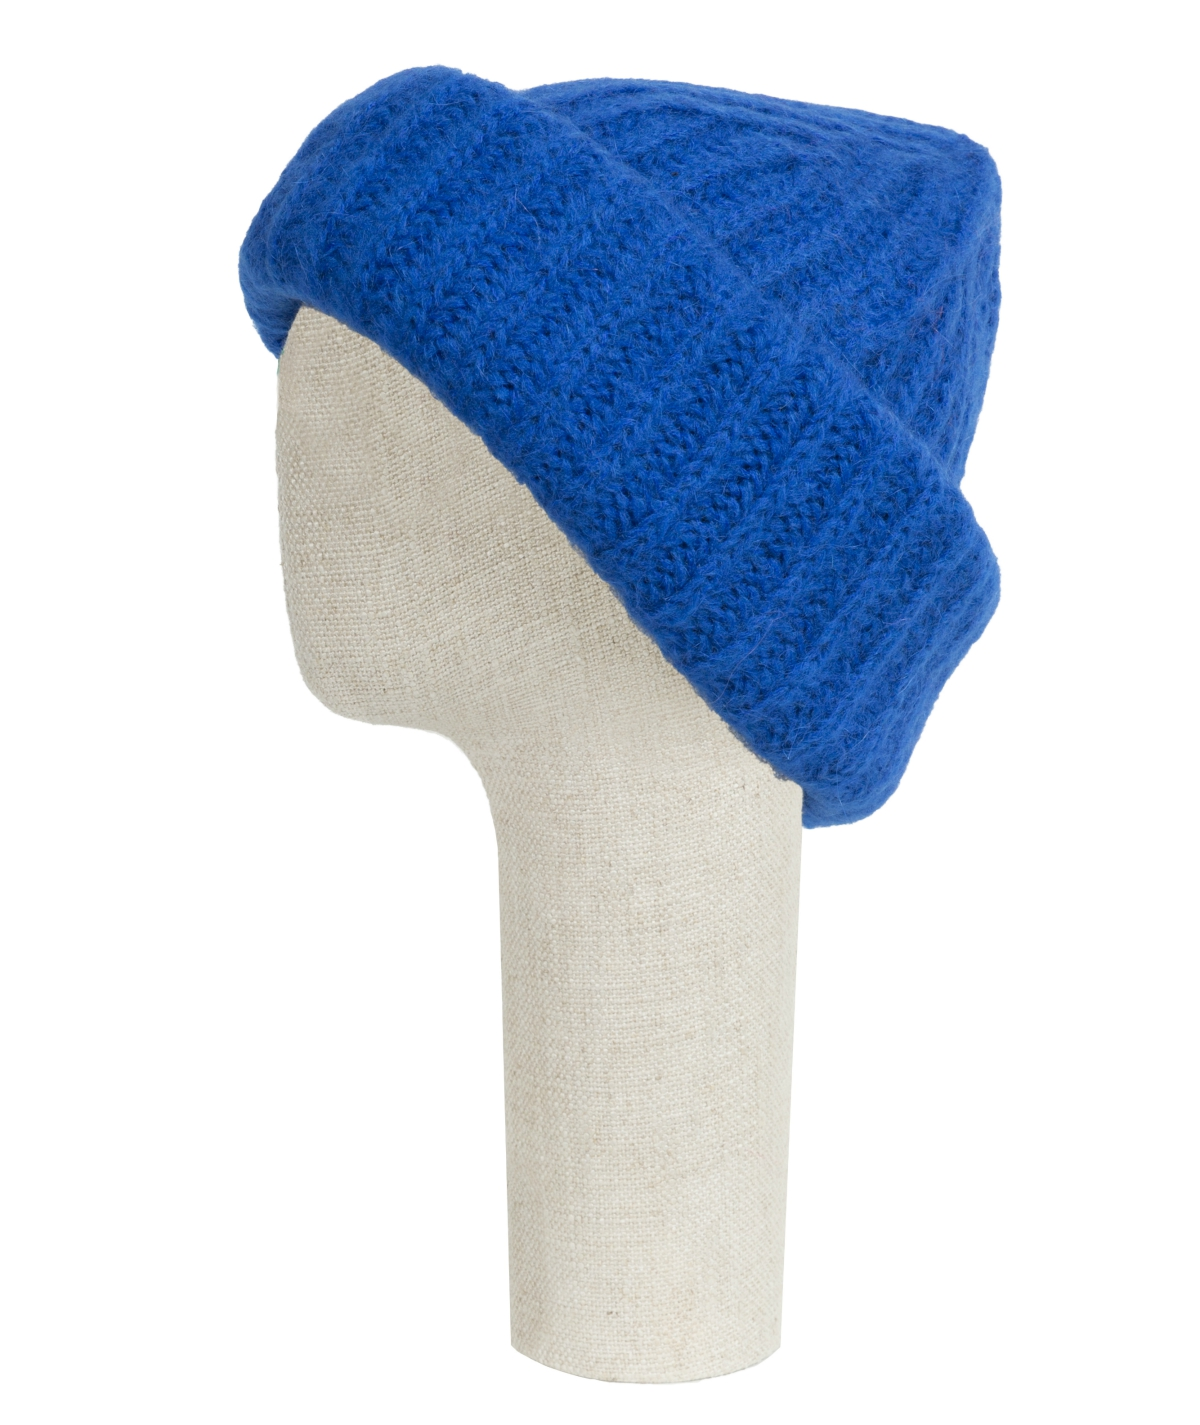 ST MORITZ HAT ELECTRIC BLUE FLUO – Official site Tak-Ori.com 023a7cc3ab5